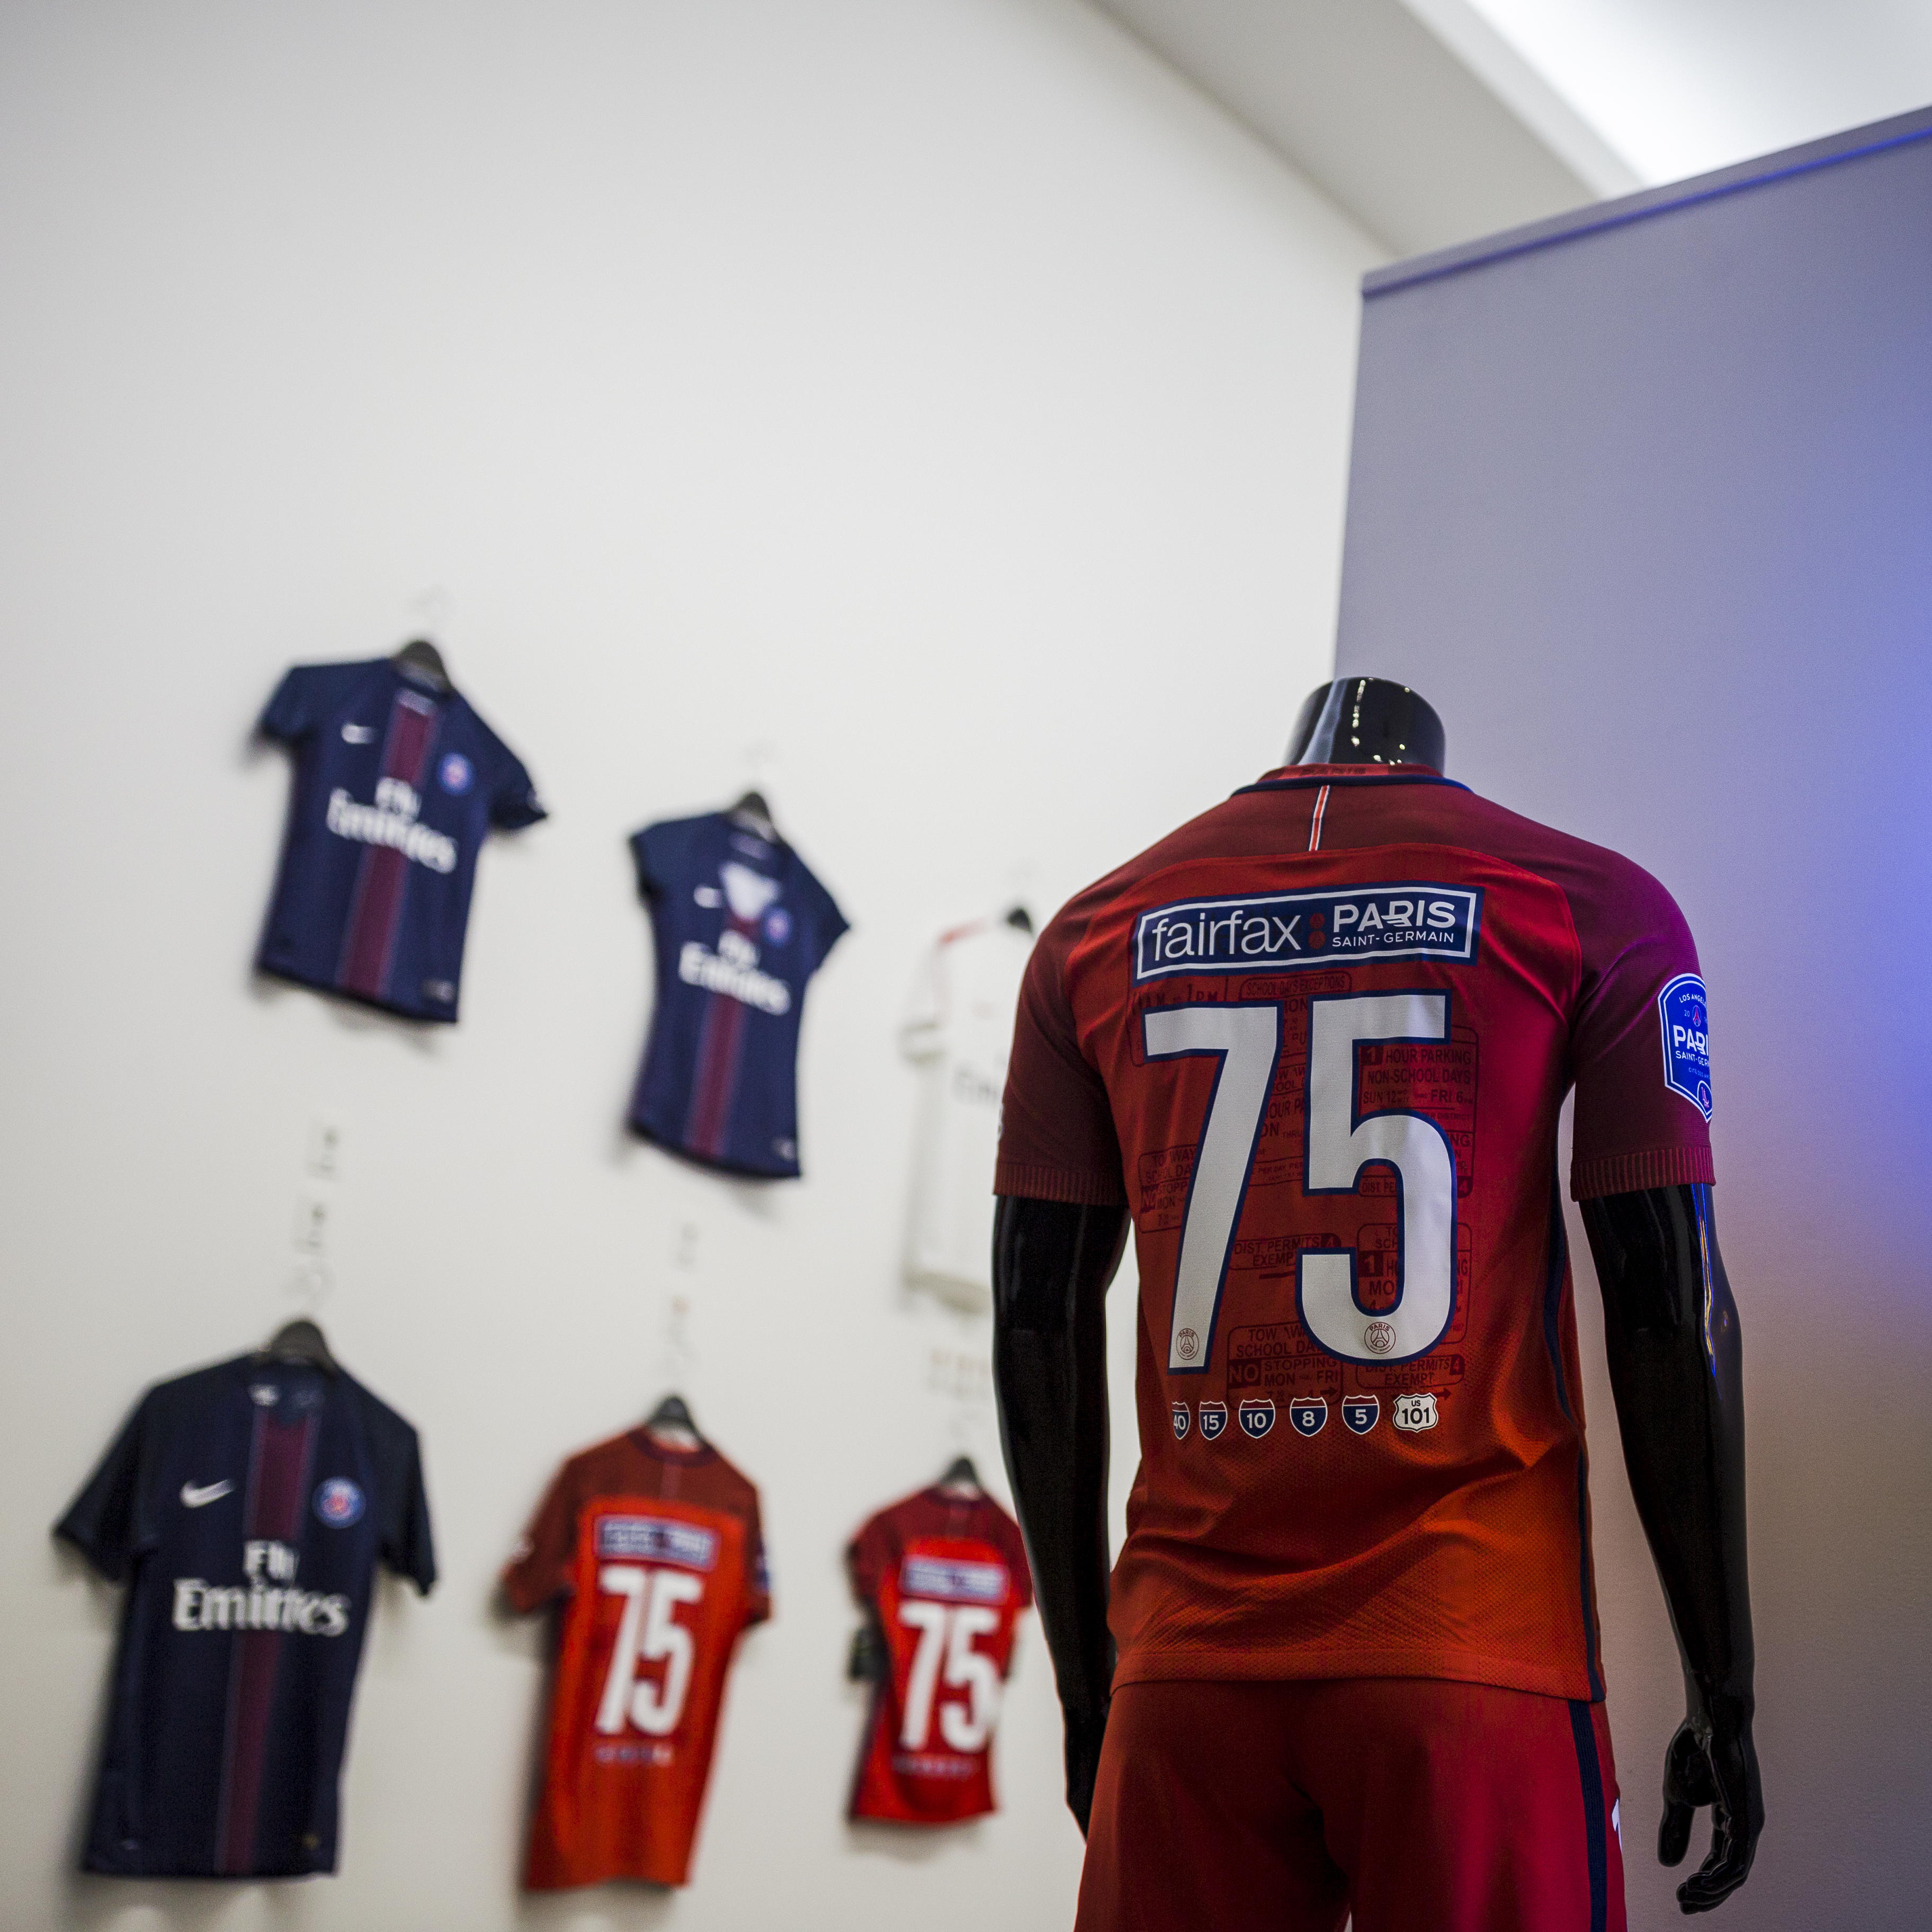 PSG maillot collector los angeles 2016 nike